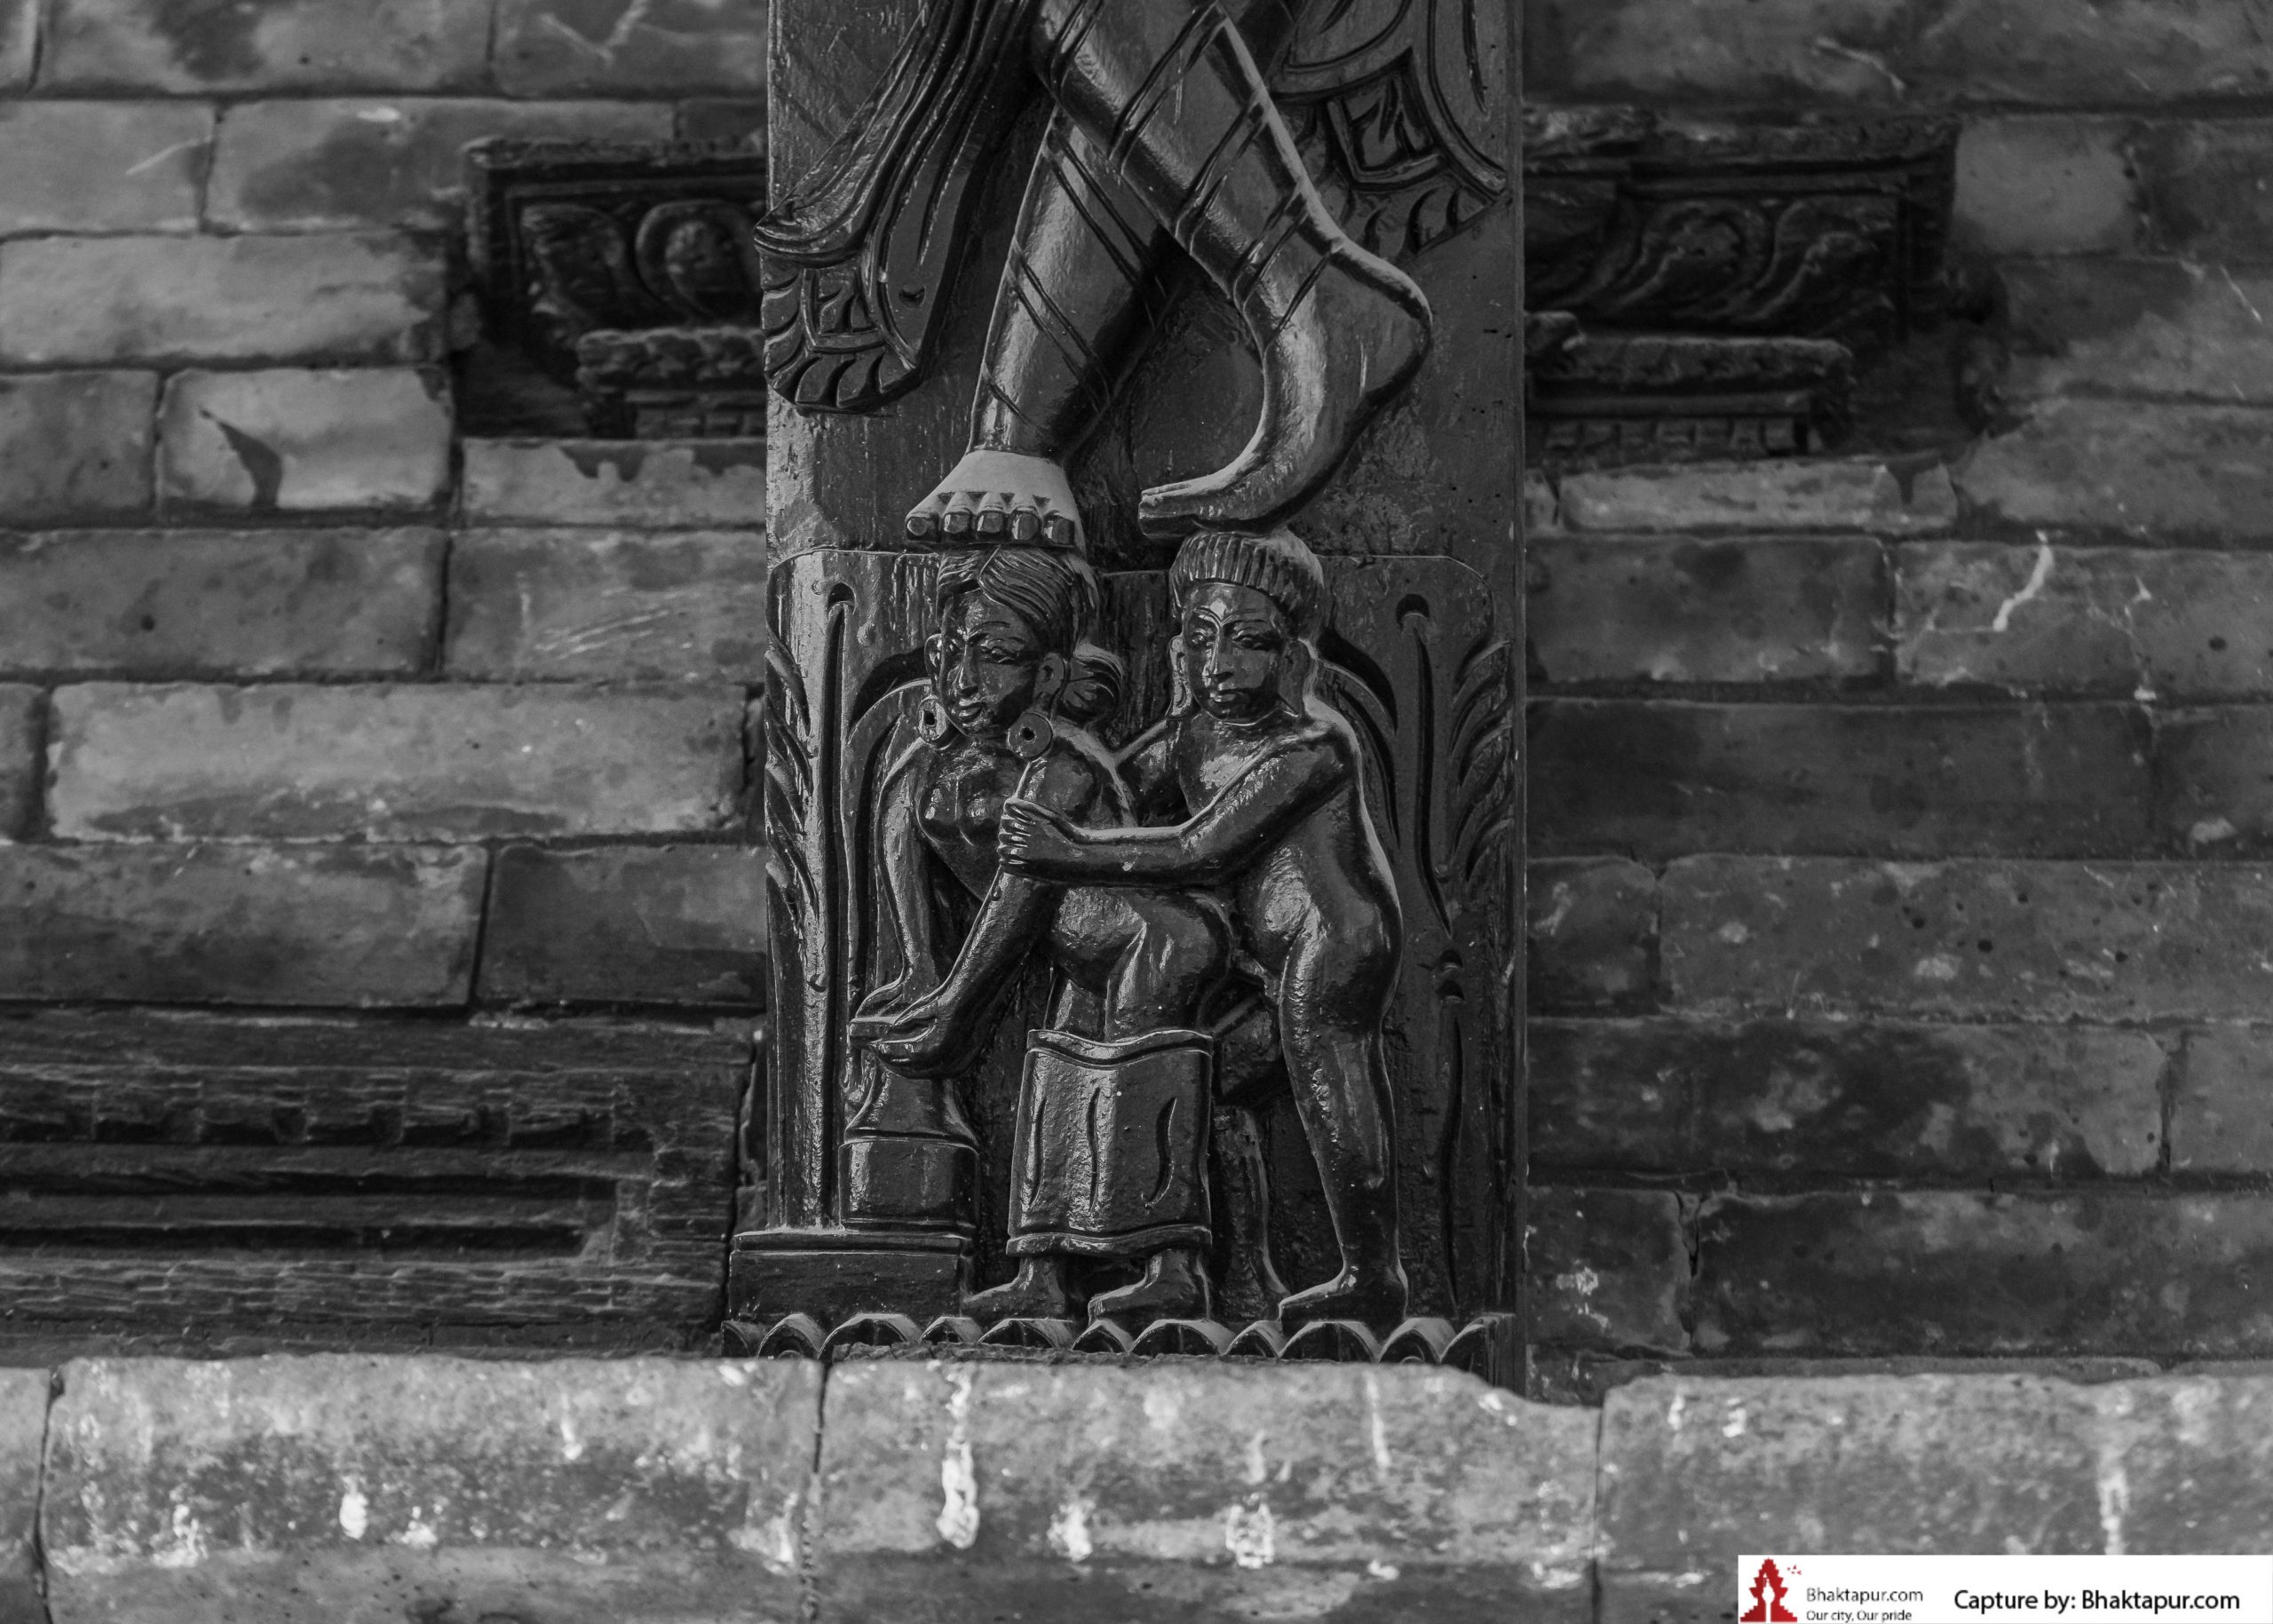 https://www.bhaktapur.com/wp-content/uploads/2021/08/erotic-carving-35-of-137-scaled.jpg